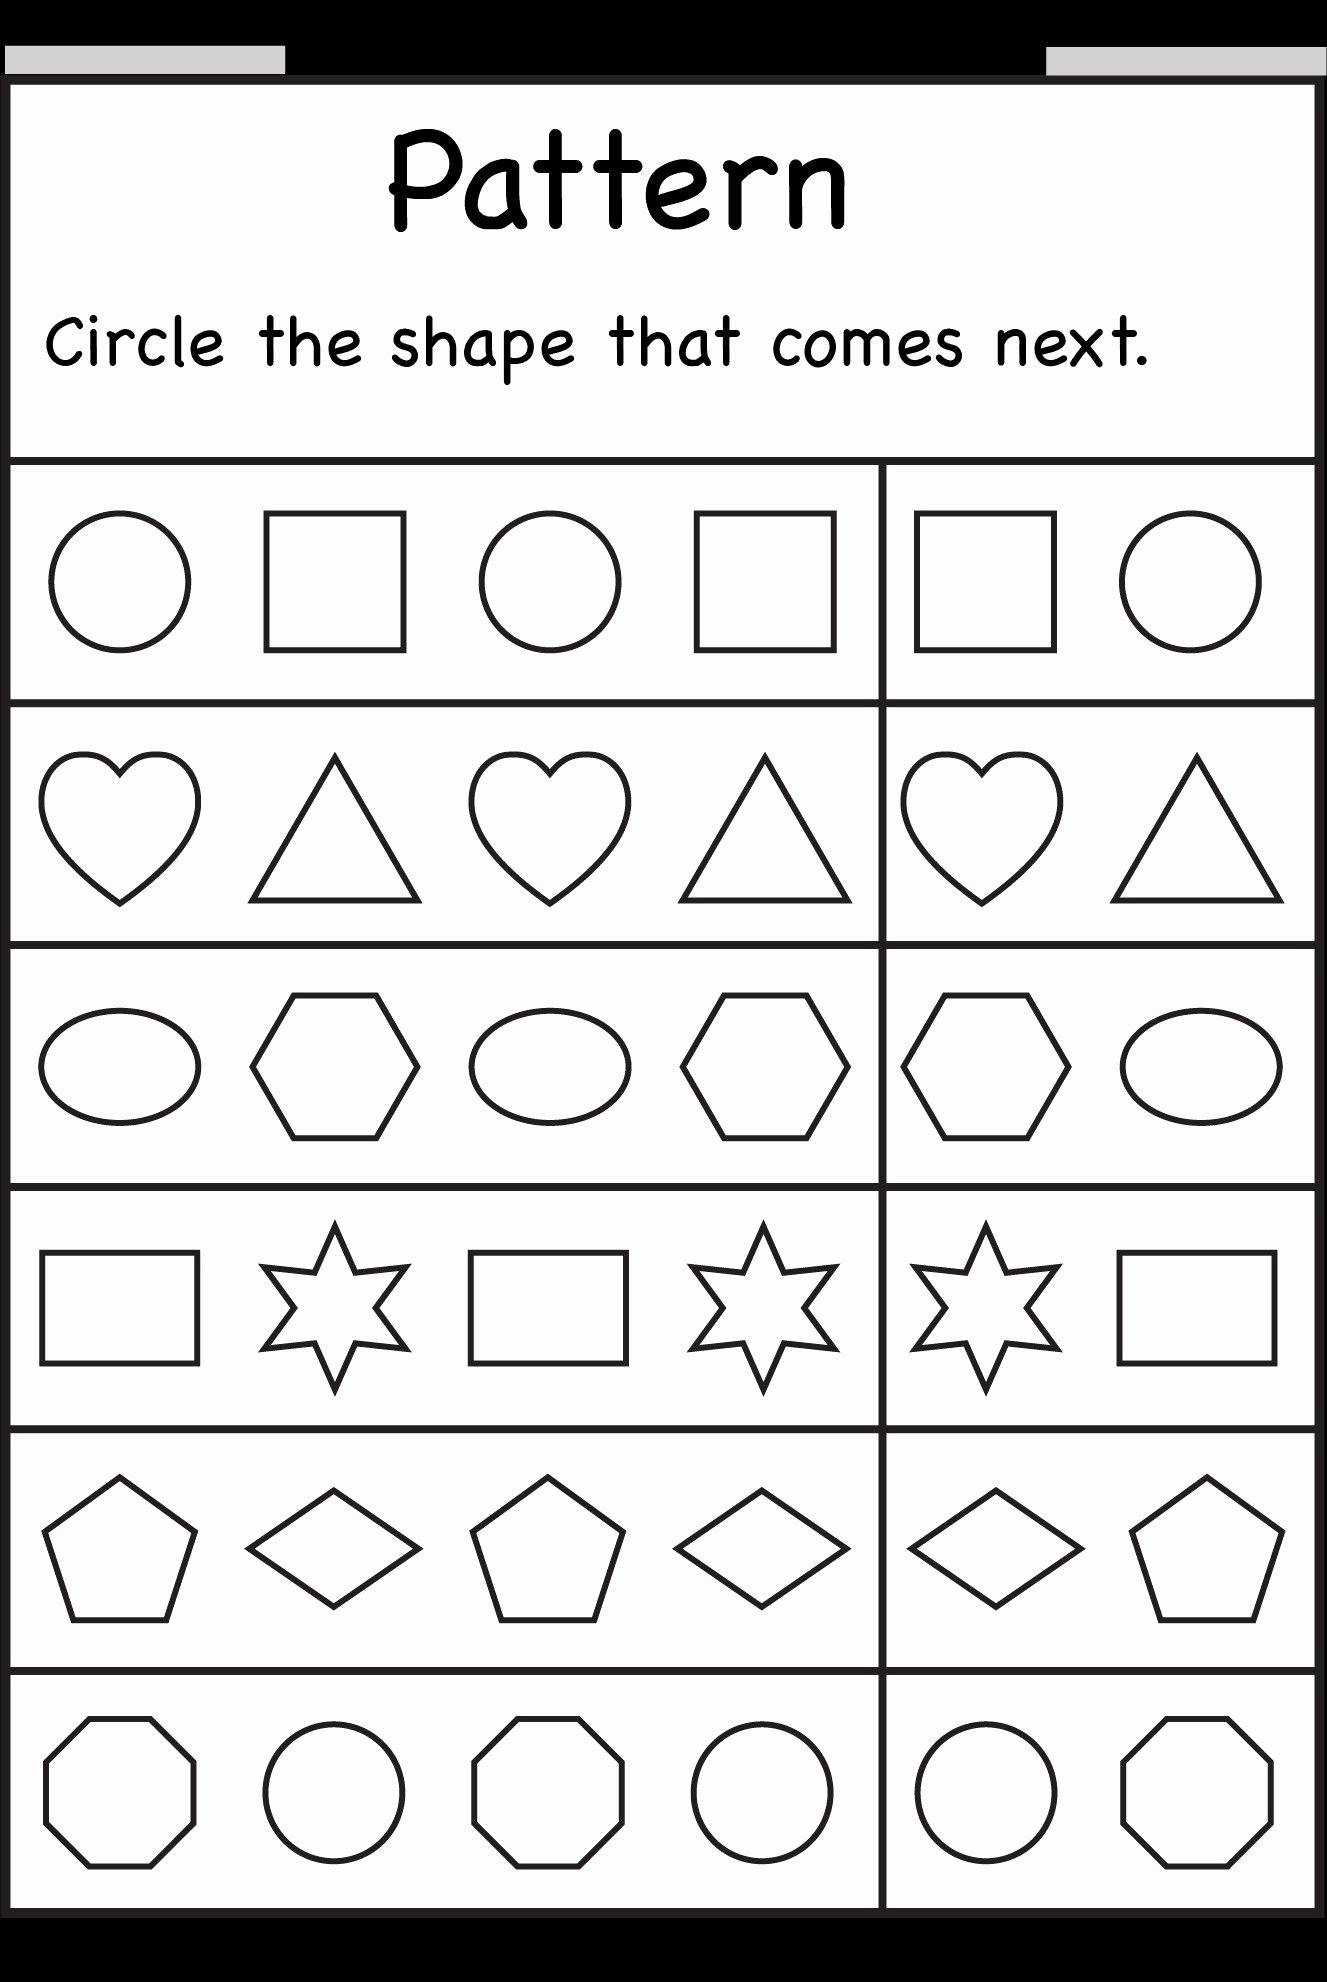 Pattern Worksheets for Preschoolers Free Lovely Pin by Renee Braddy On Kindergarten